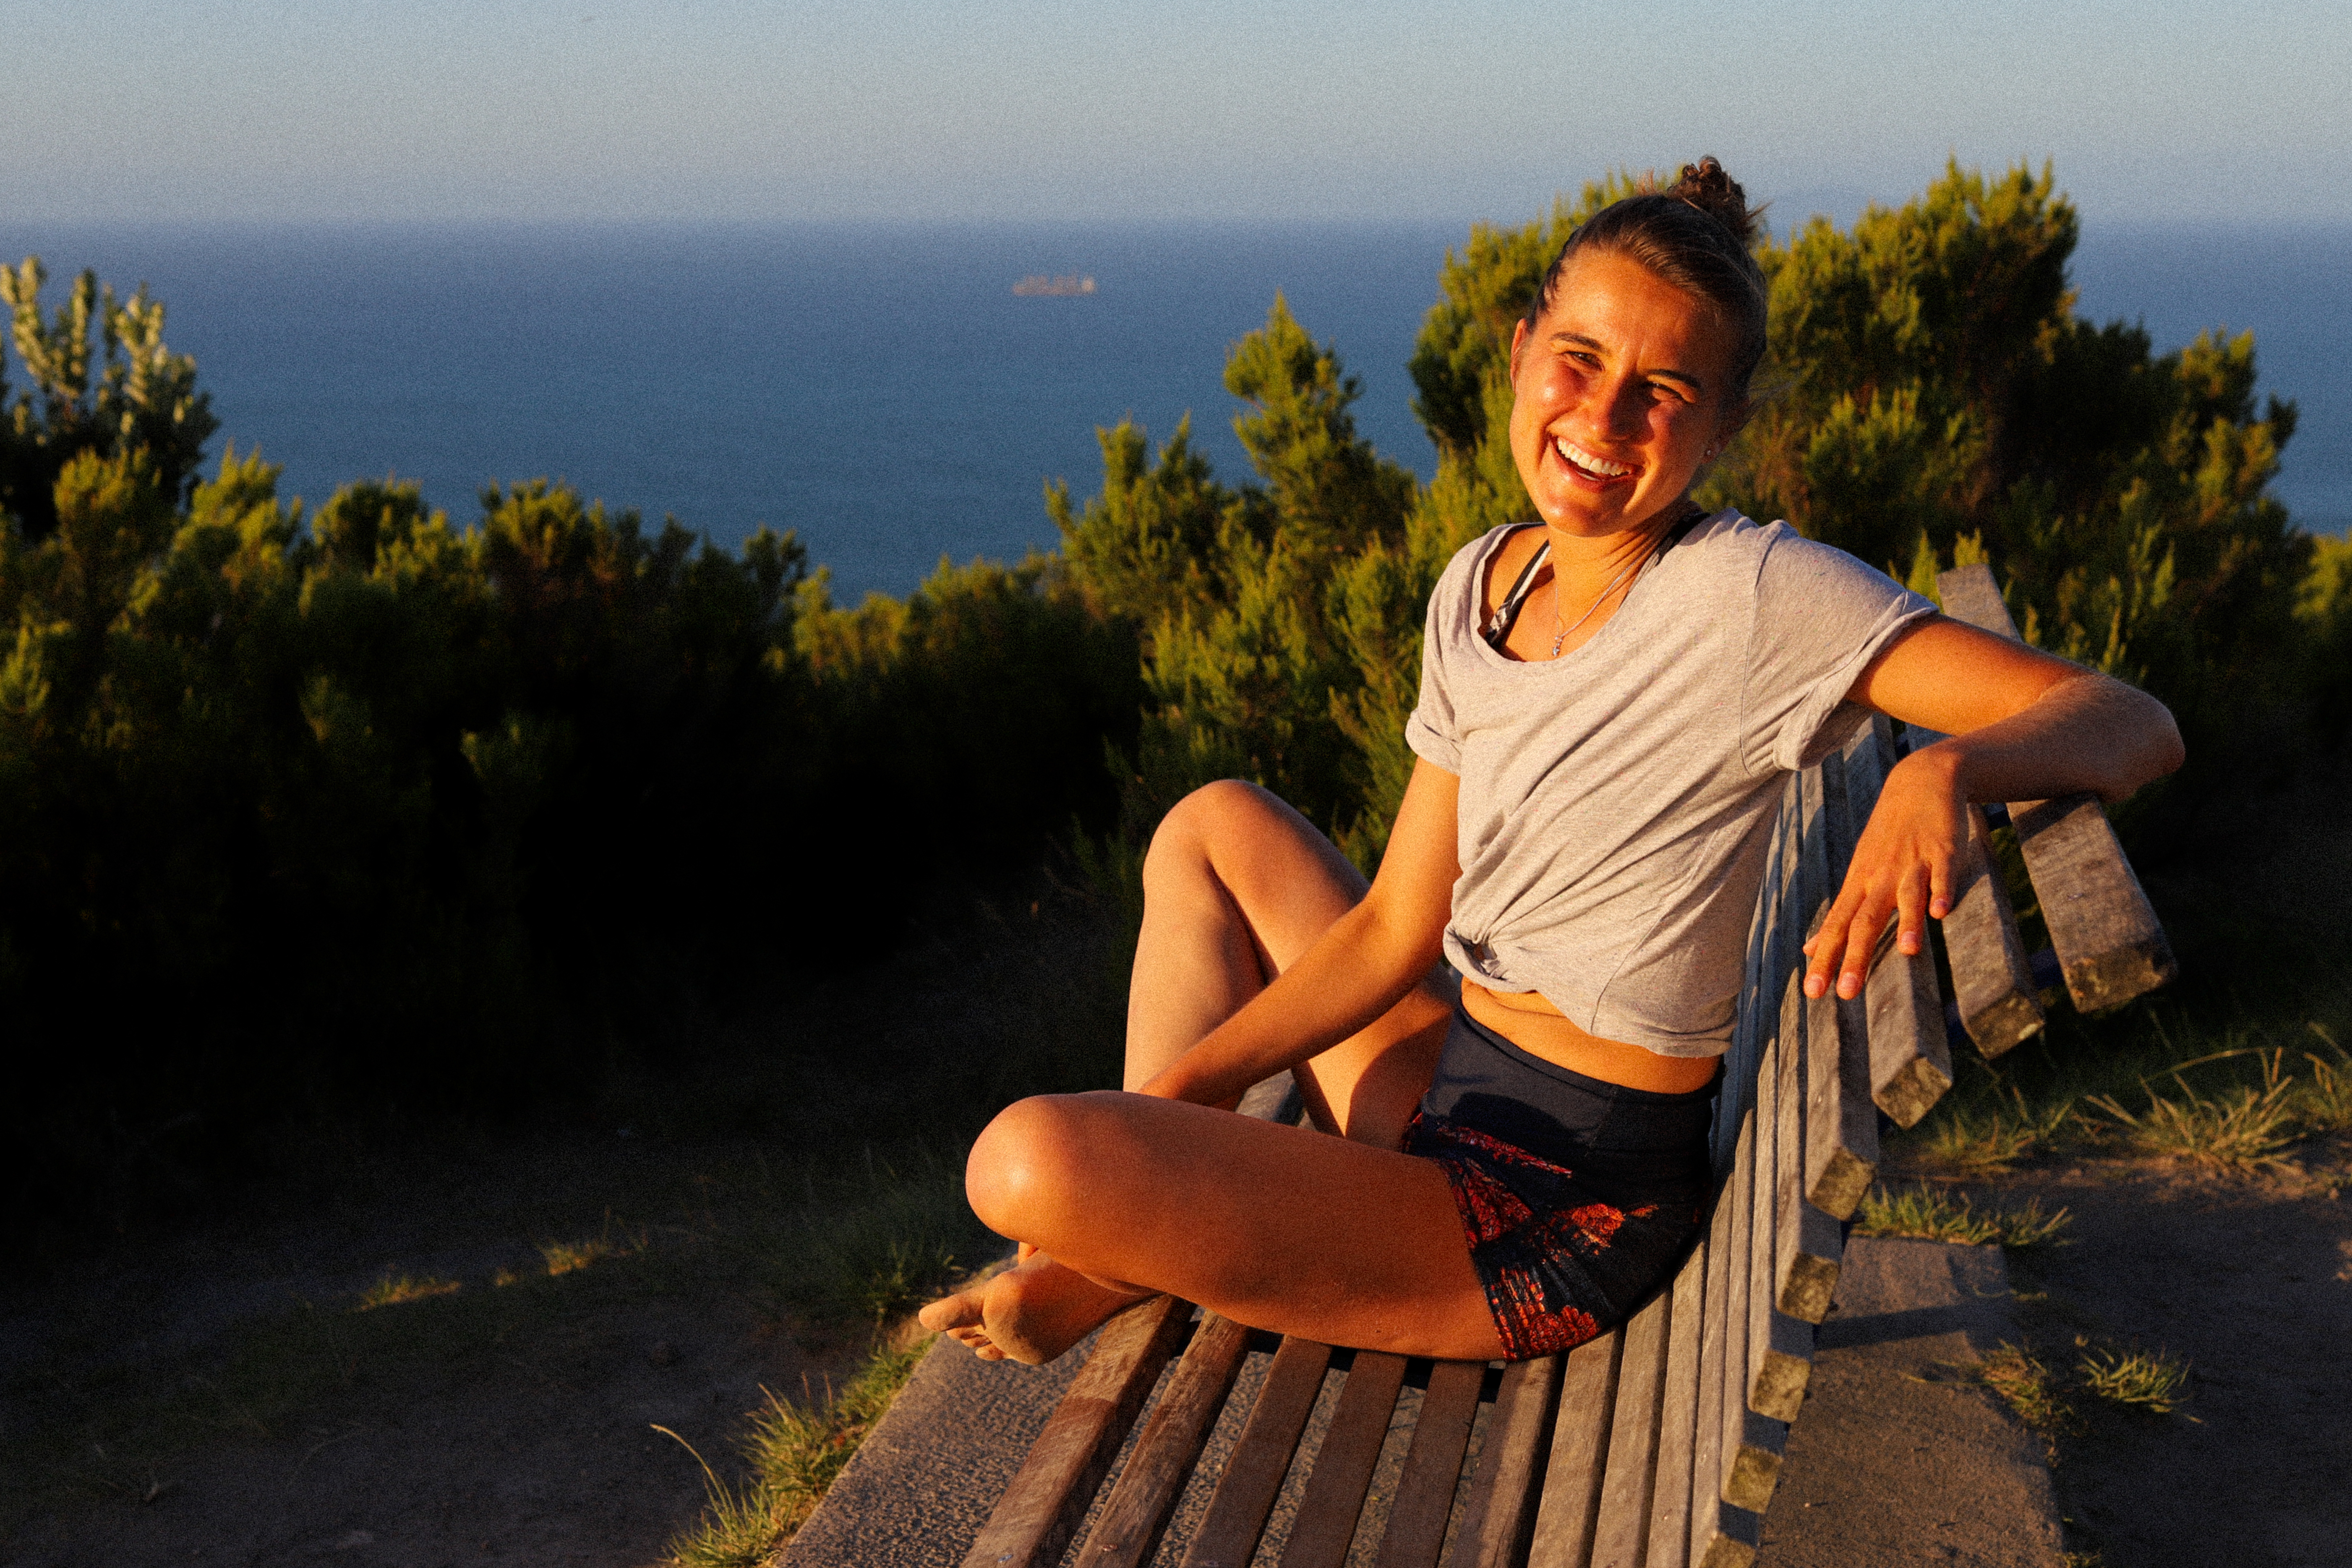 Happy days on top of the Mount in Tauranga, New Zealand.